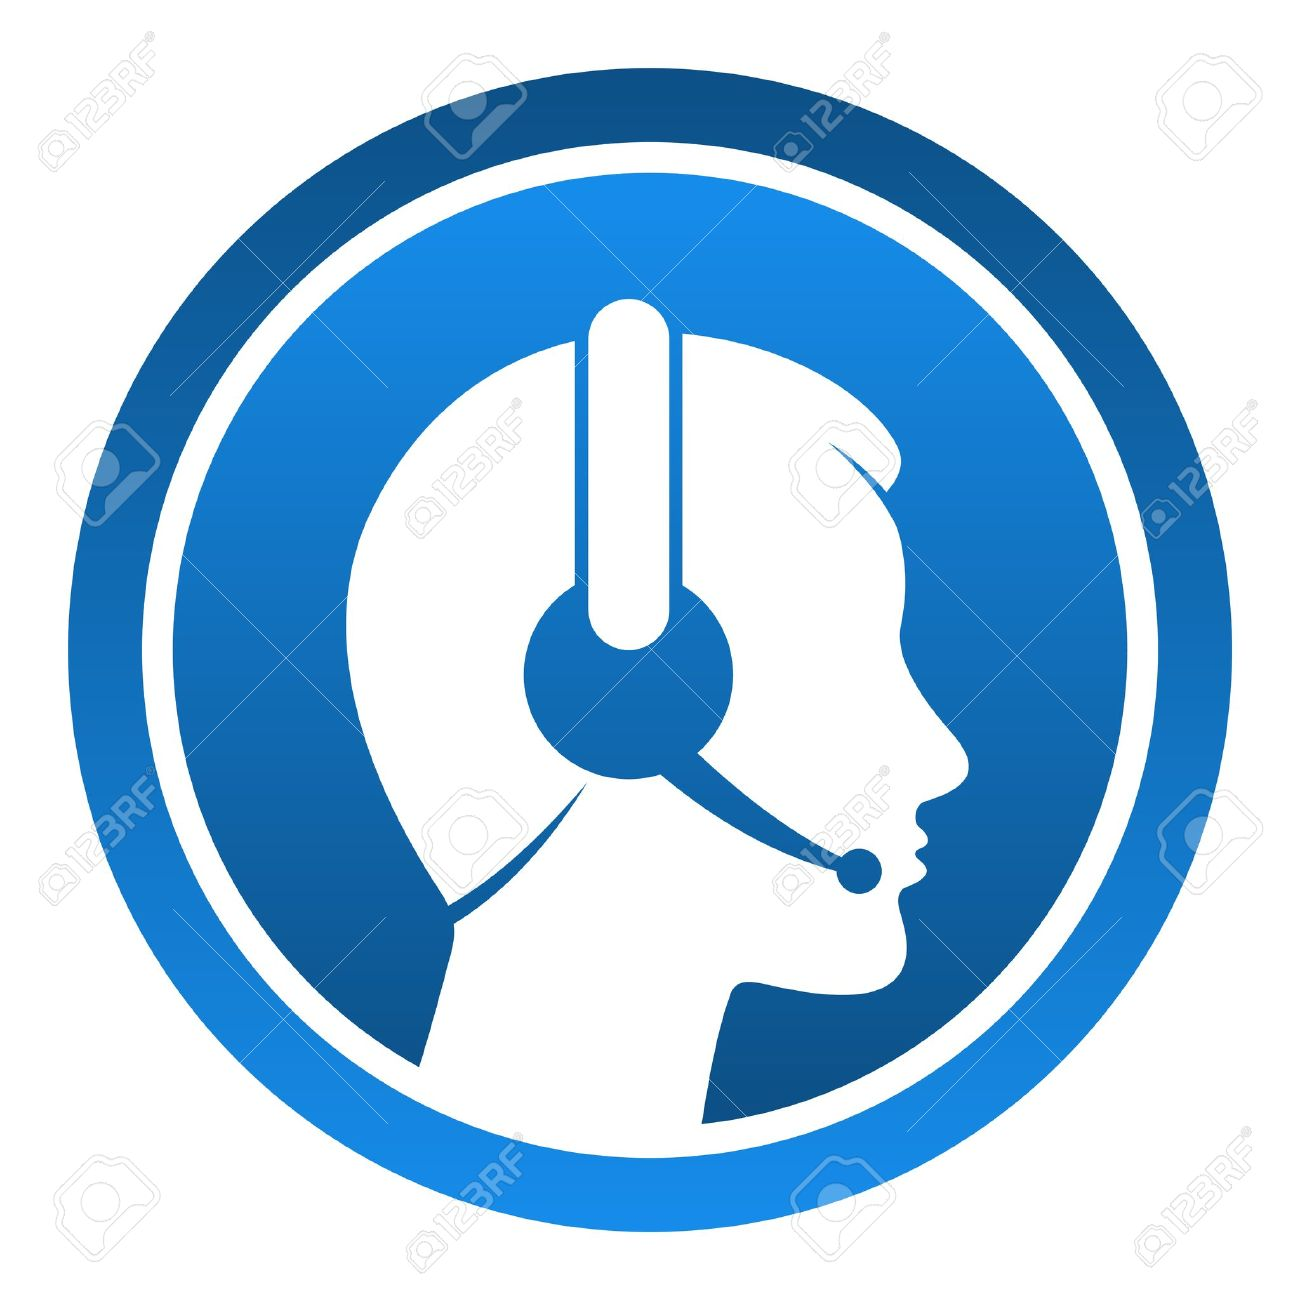 Headset Contact Icon - 14720149